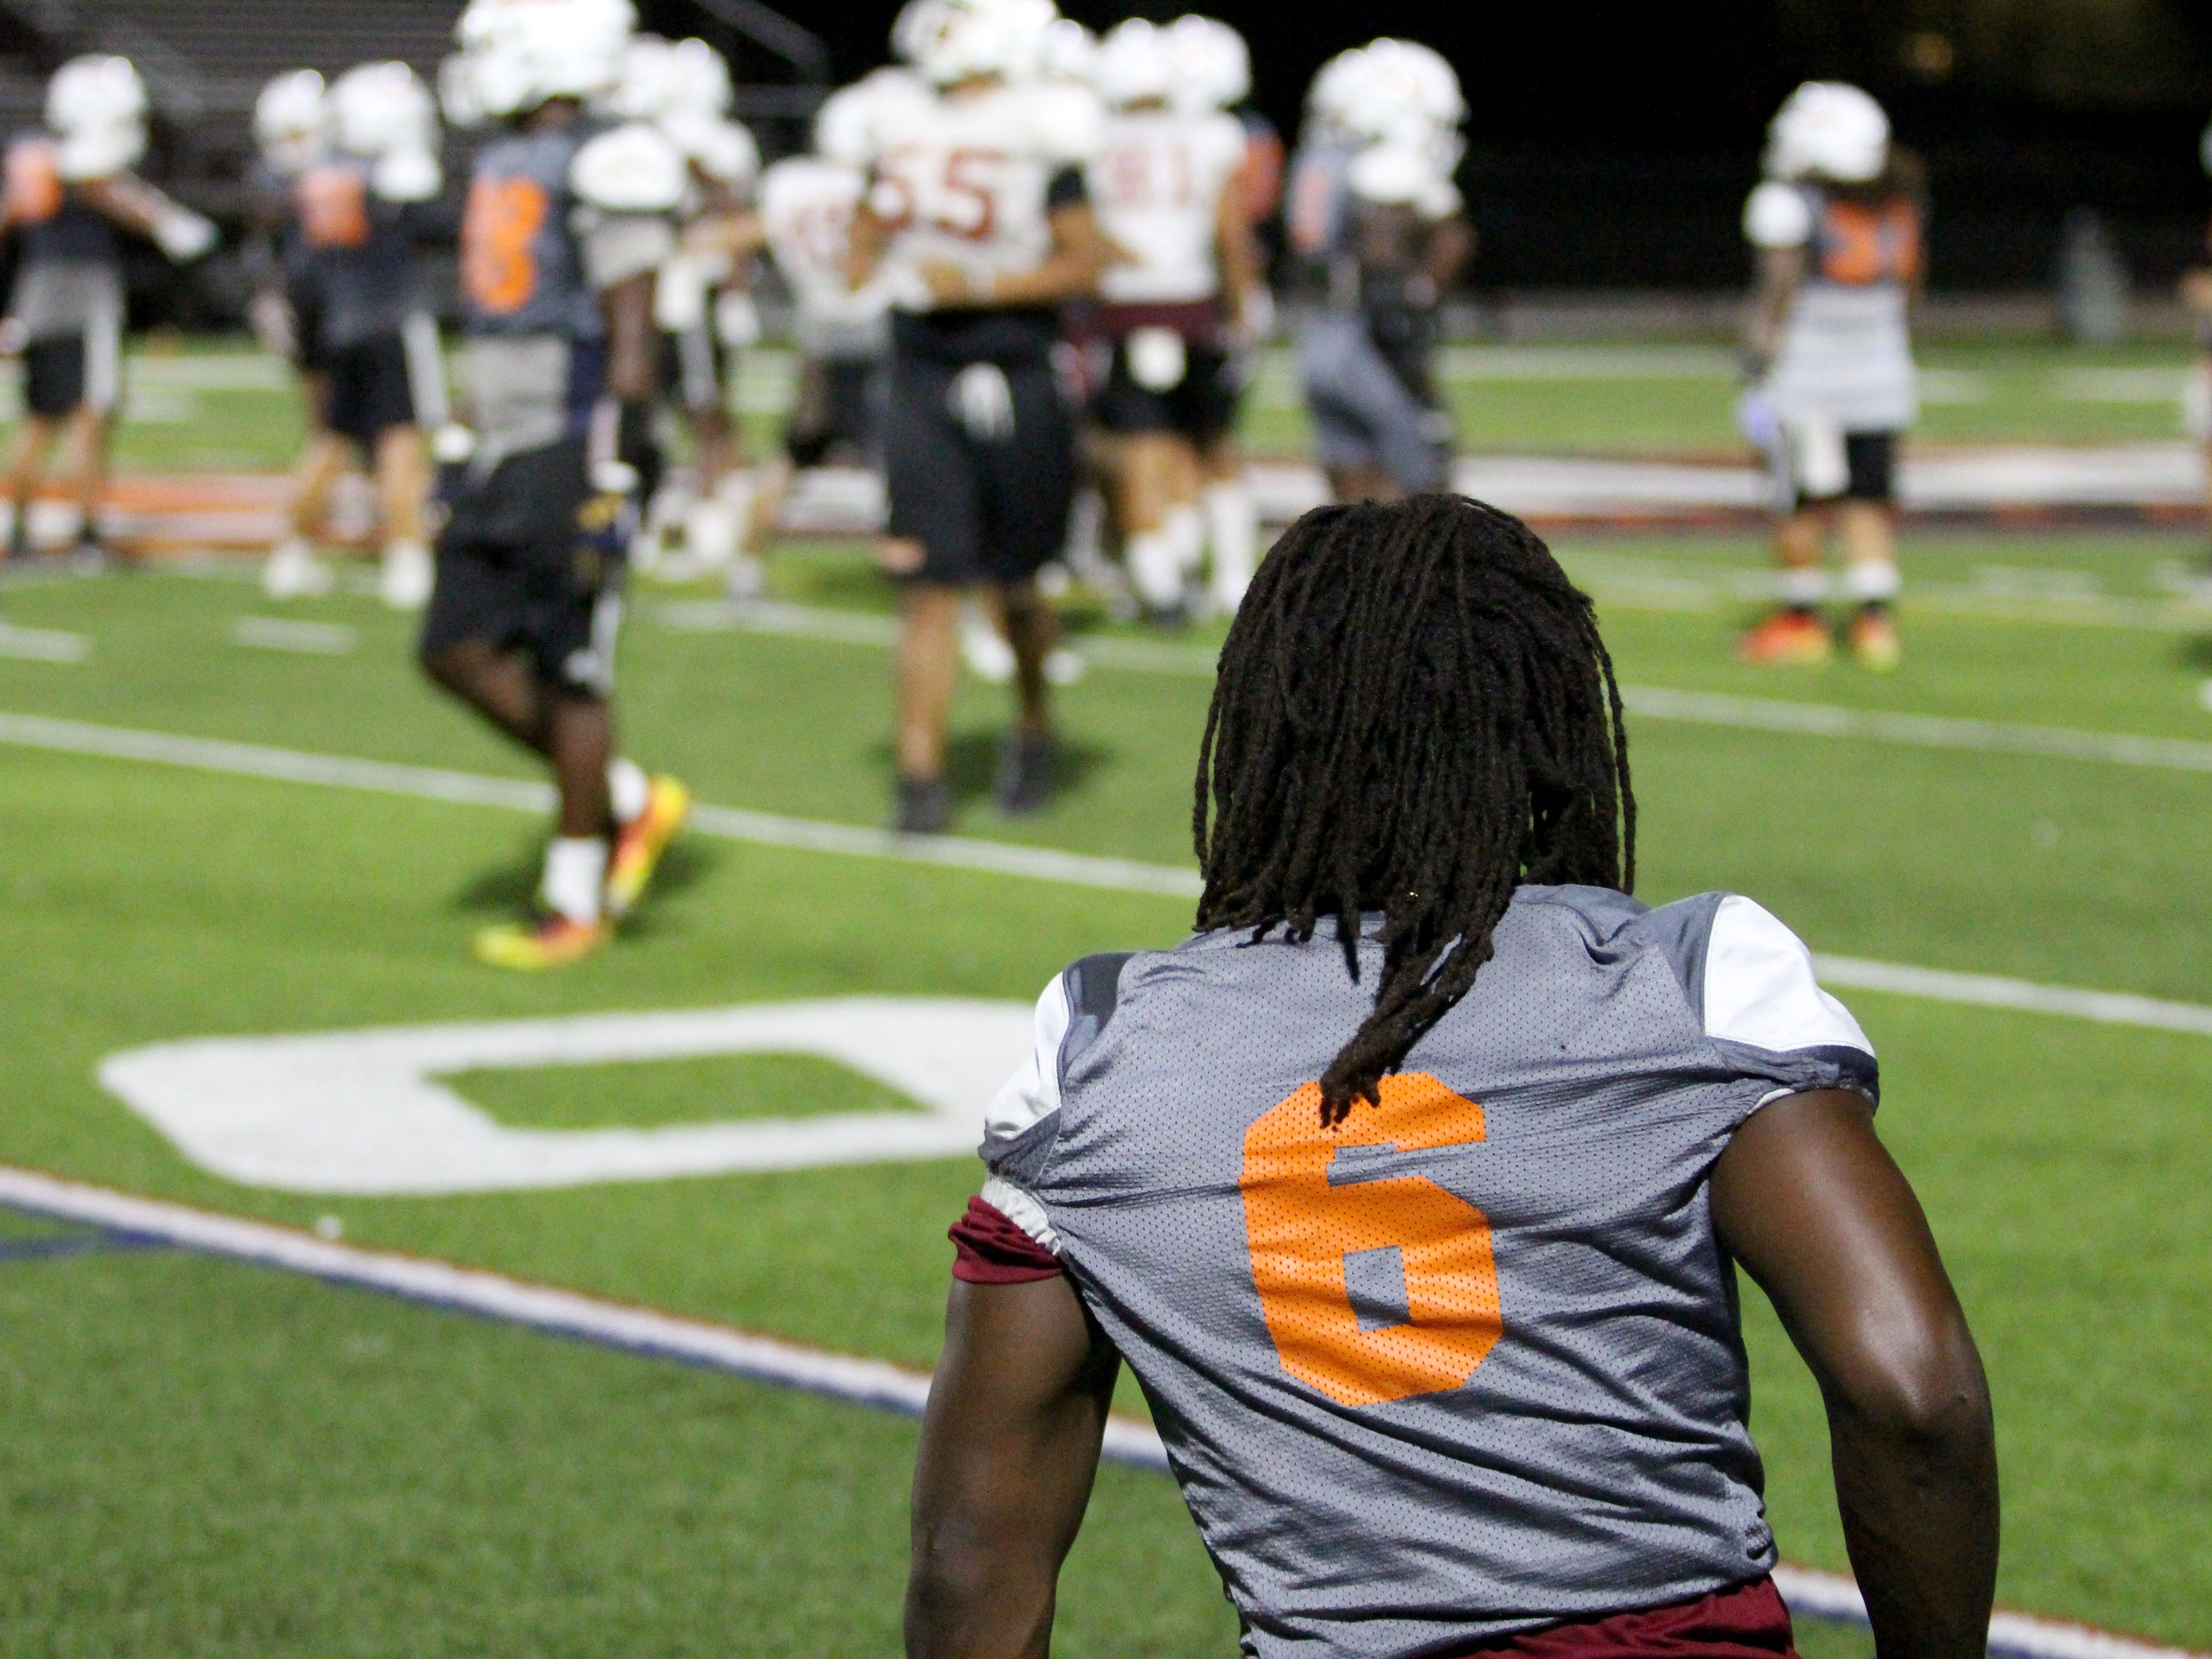 OUAZ's Amare Burks takes a knee and watches practice on Tuesday night in Surprise on Sept. 11, 2018.